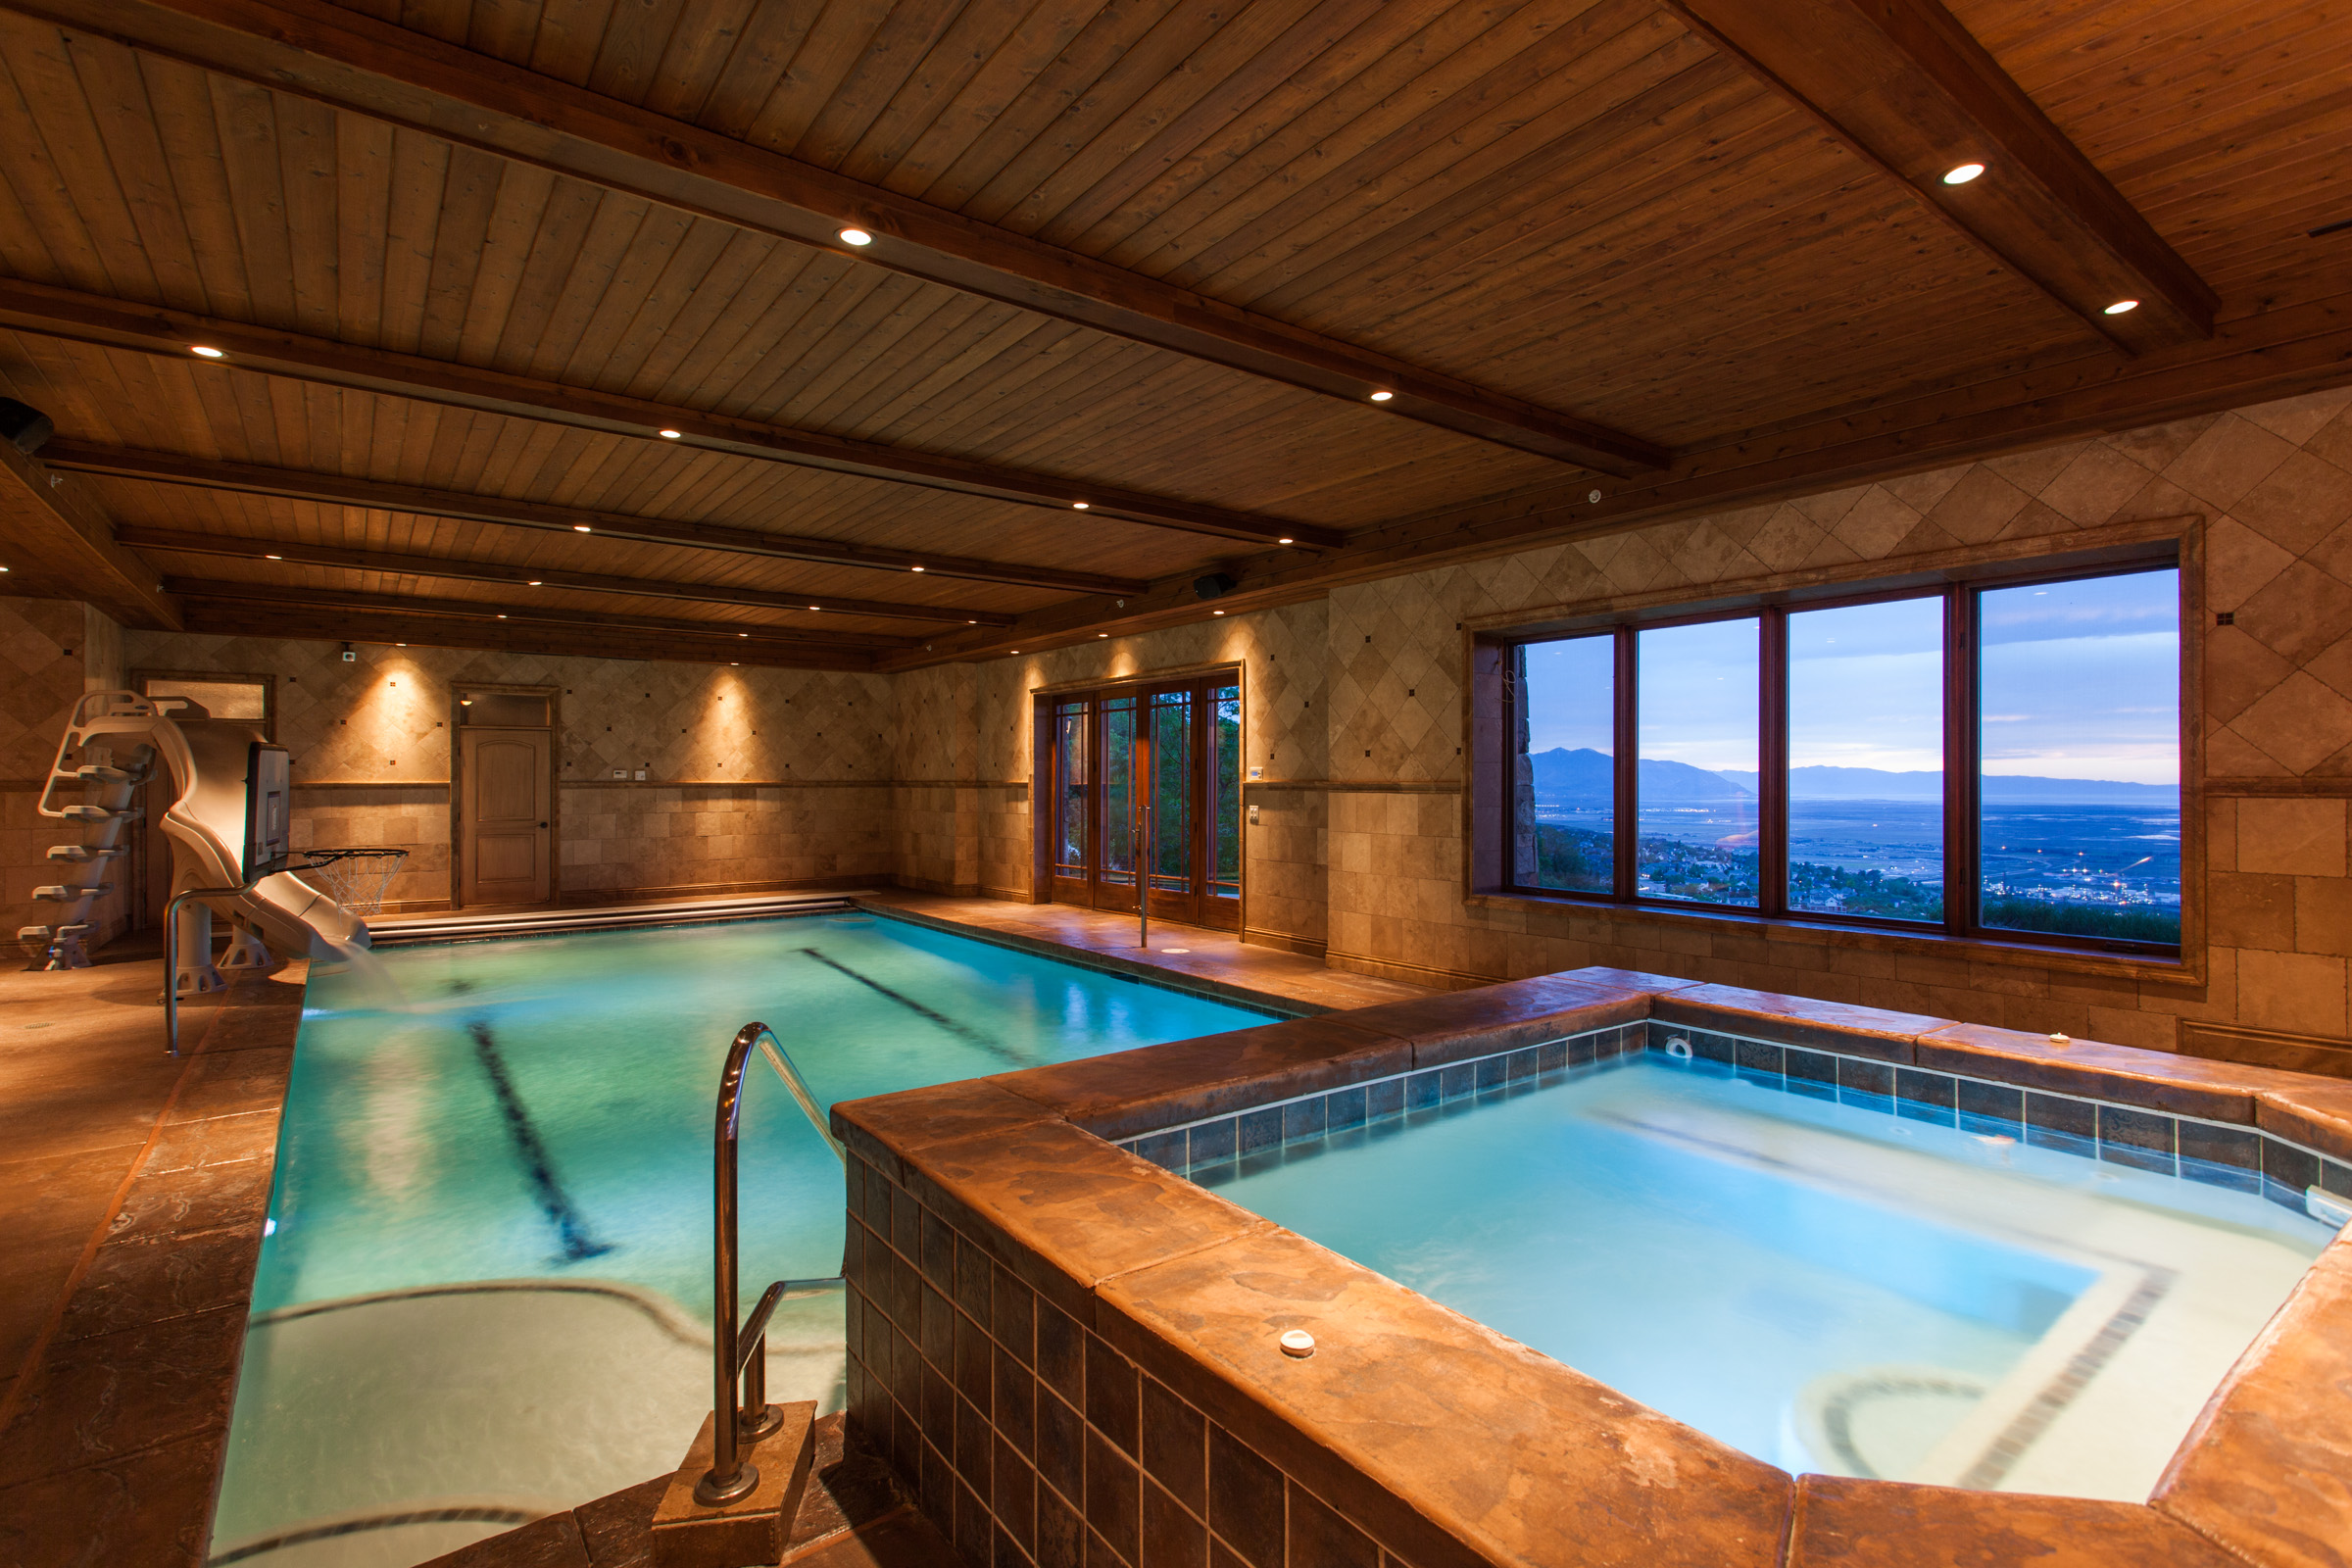 Inside Pool the ultimate luxury amenity: lavish indoor pools